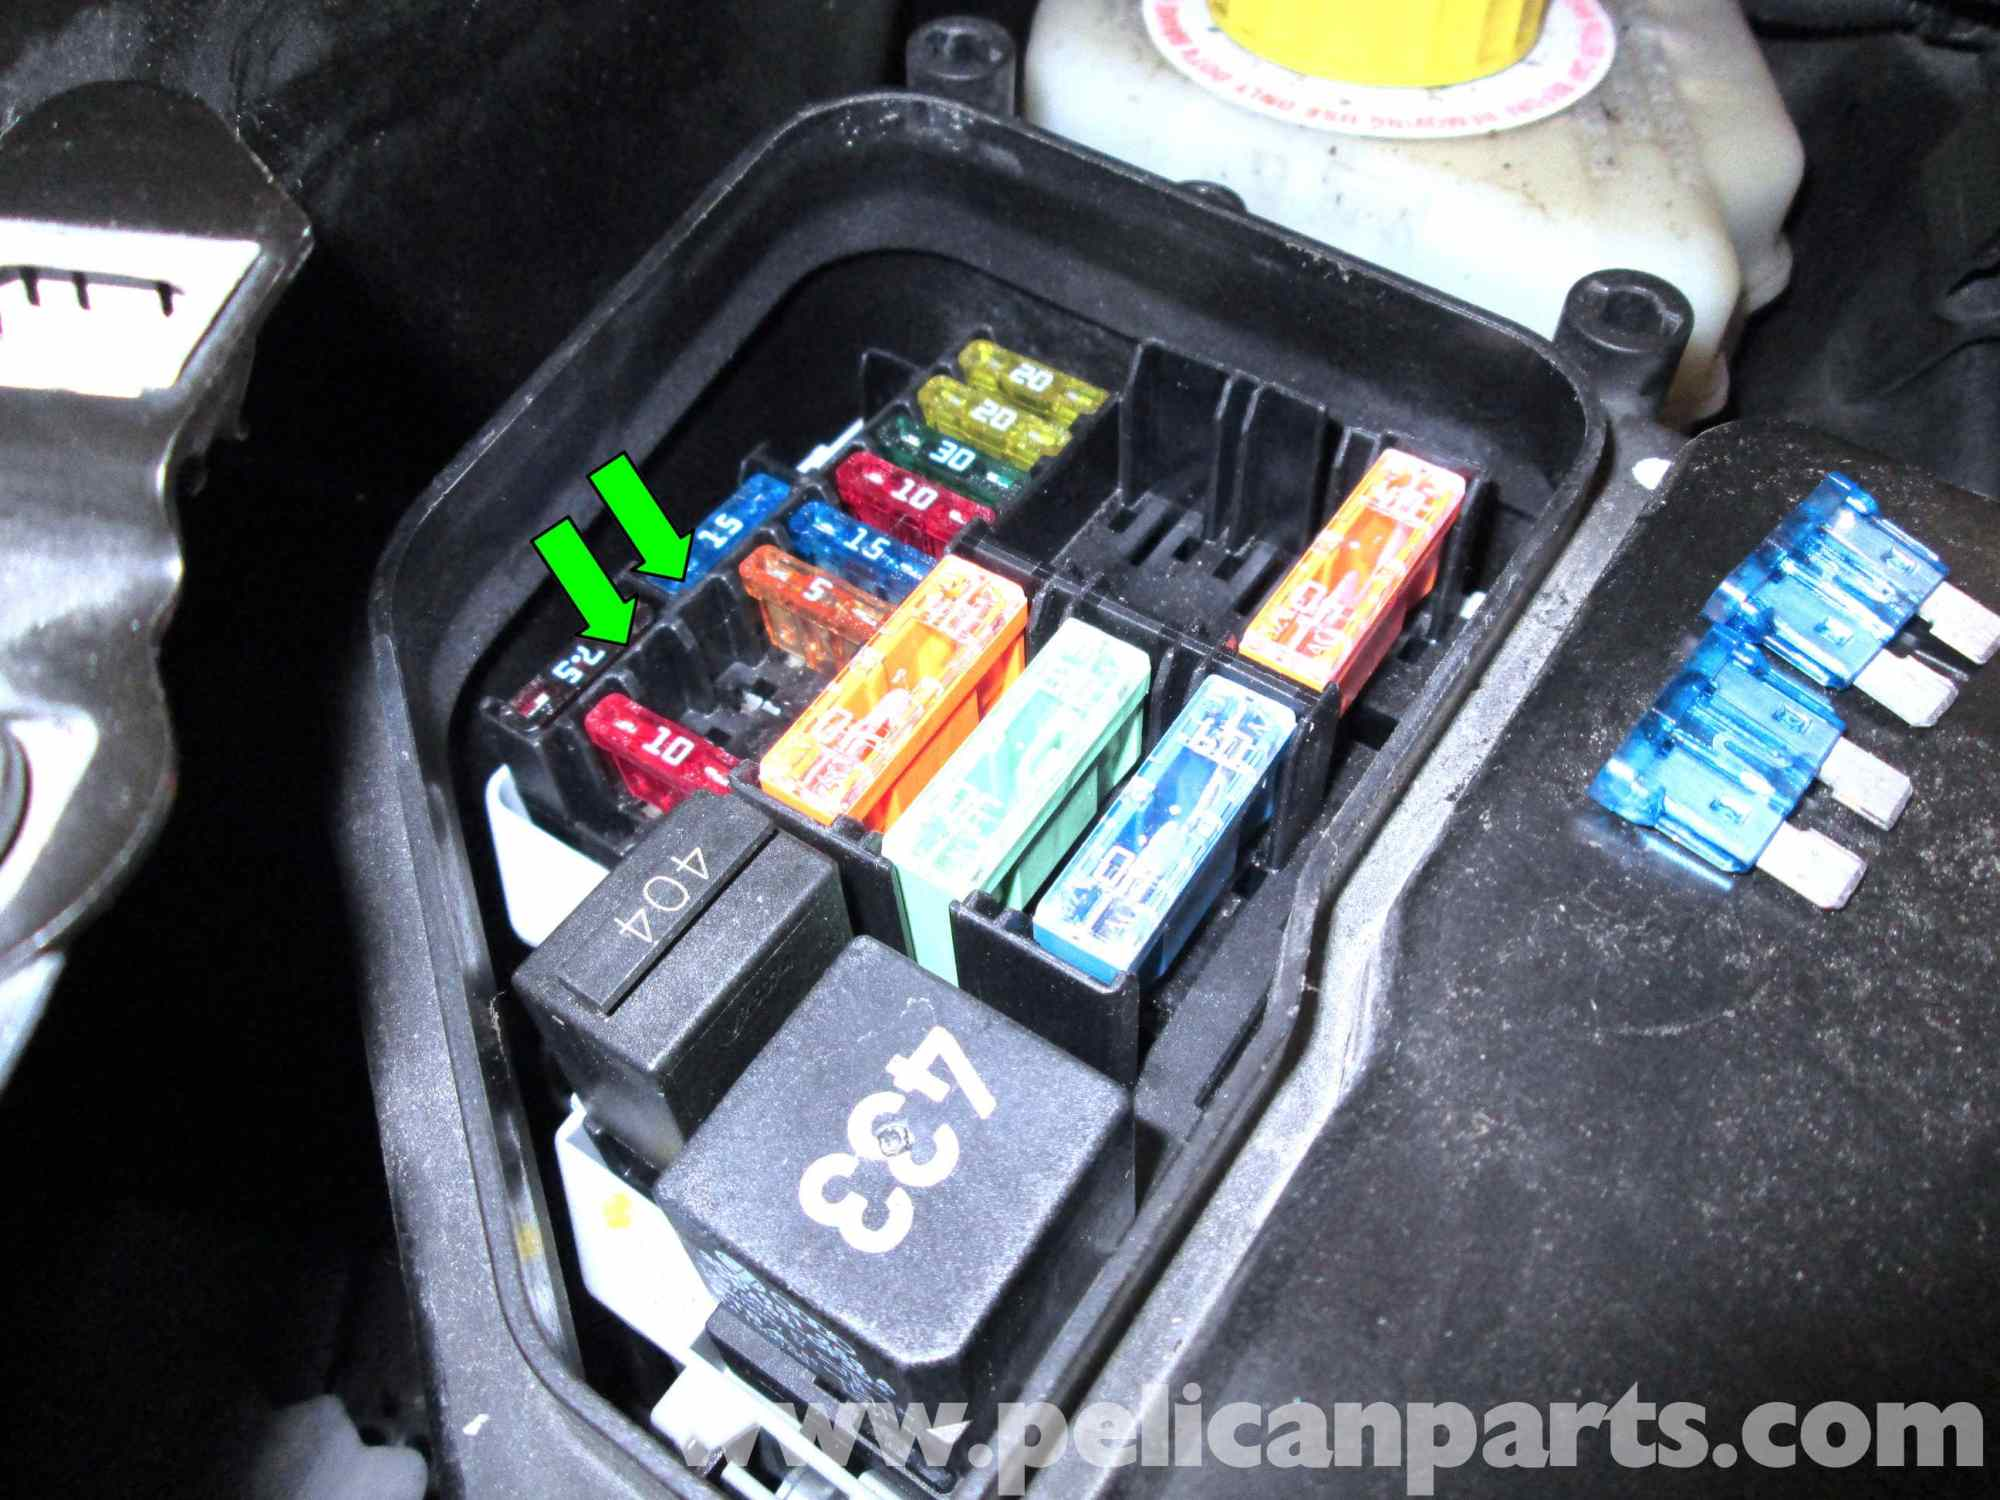 hight resolution of diagram besides bmw e46 fuse diagram on 2004 porsche cayenne s fuse diagram besides bmw e46 fuse diagram on 2004 porsche cayenne s fuse